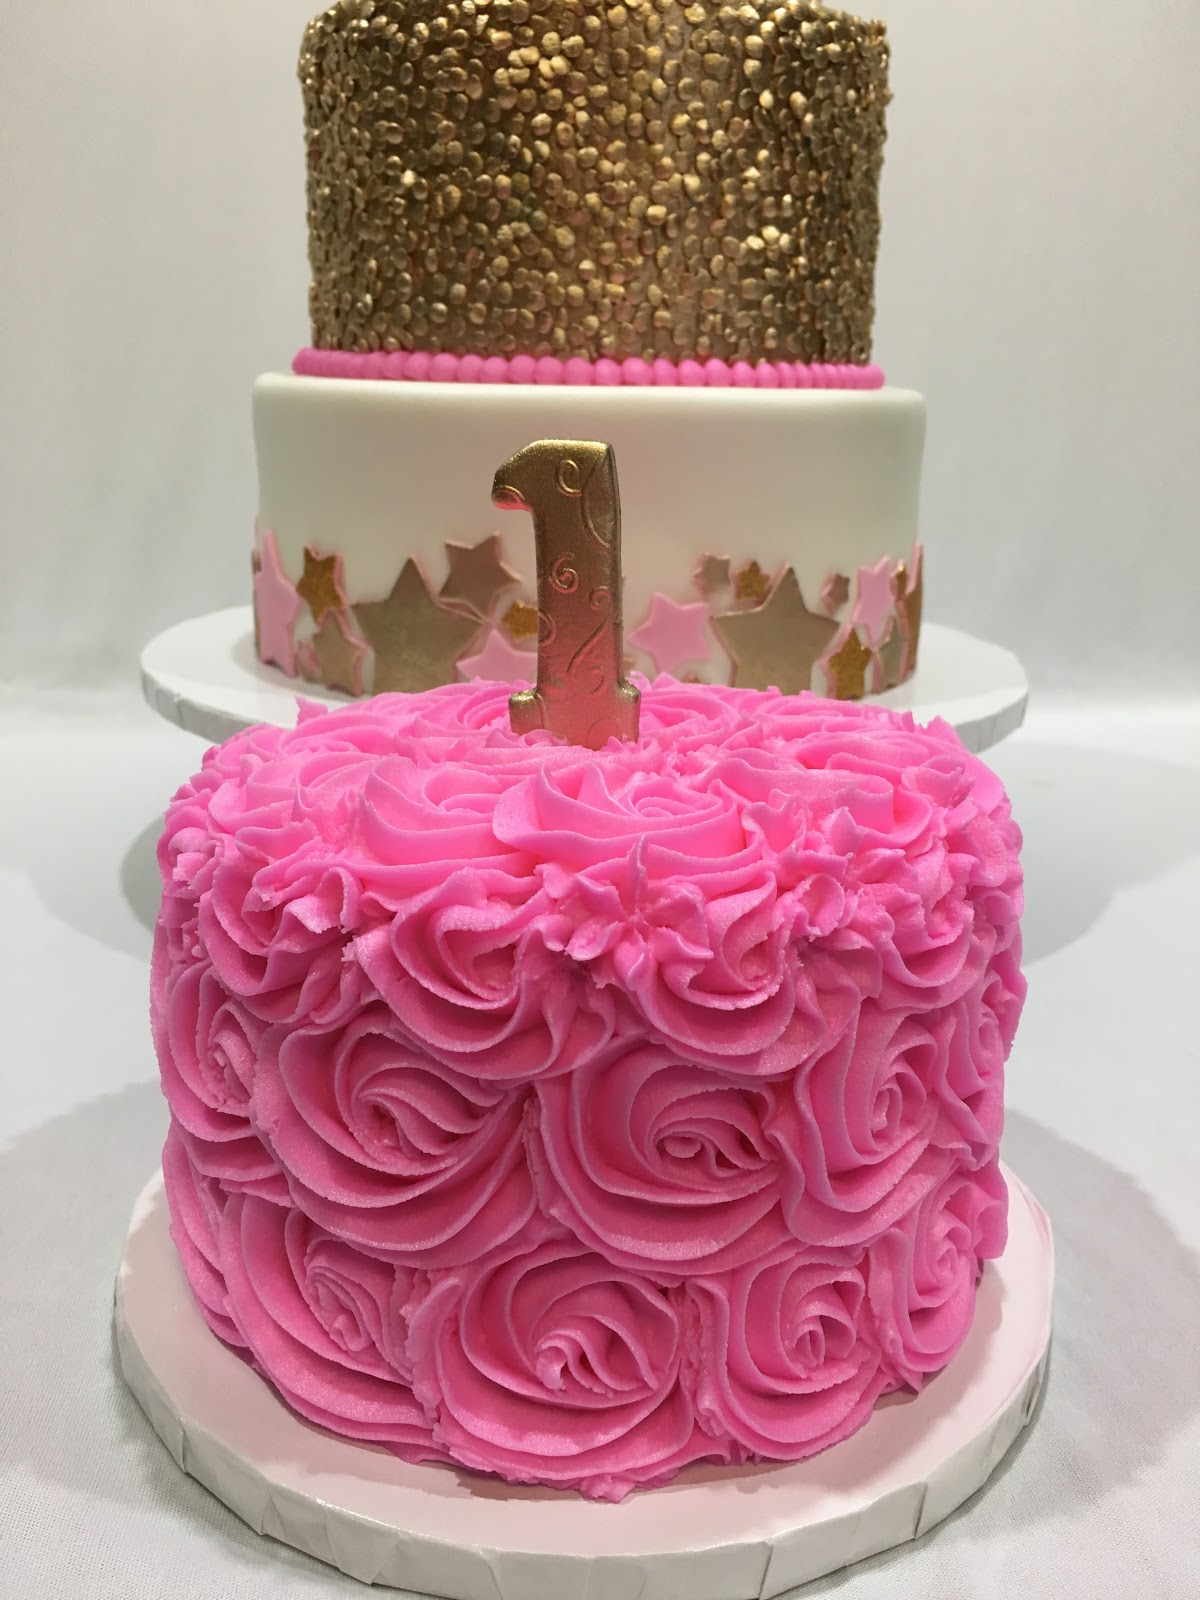 MyMoniCakes: Twinkle a Twinkle Little Star cake with gold sequin tier